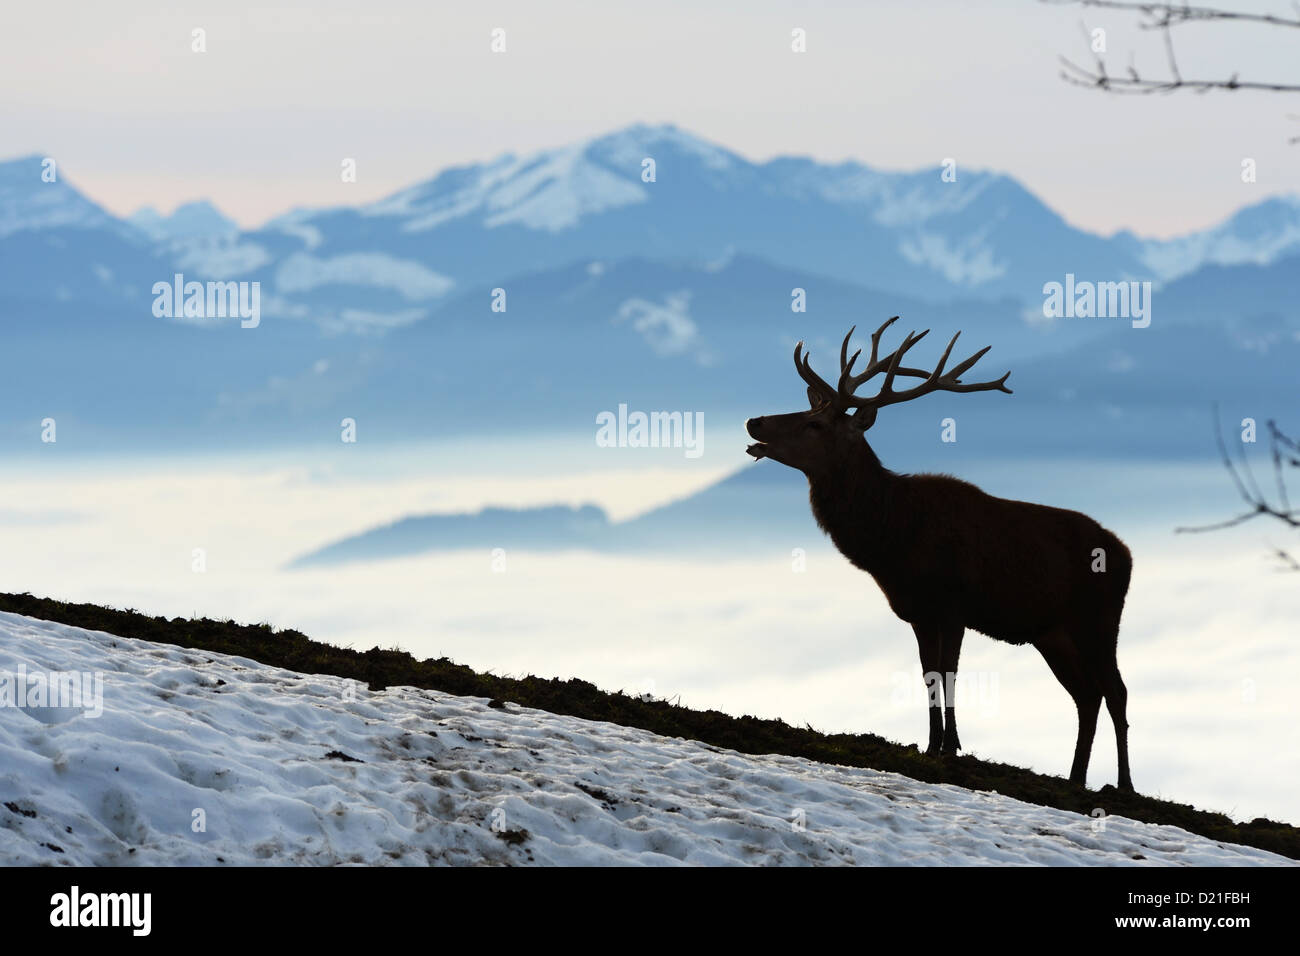 A stag roars in front of the Alps and the fog-covered valley pictured on the Pfaender mountain, Austria, 09 January - Stock Image